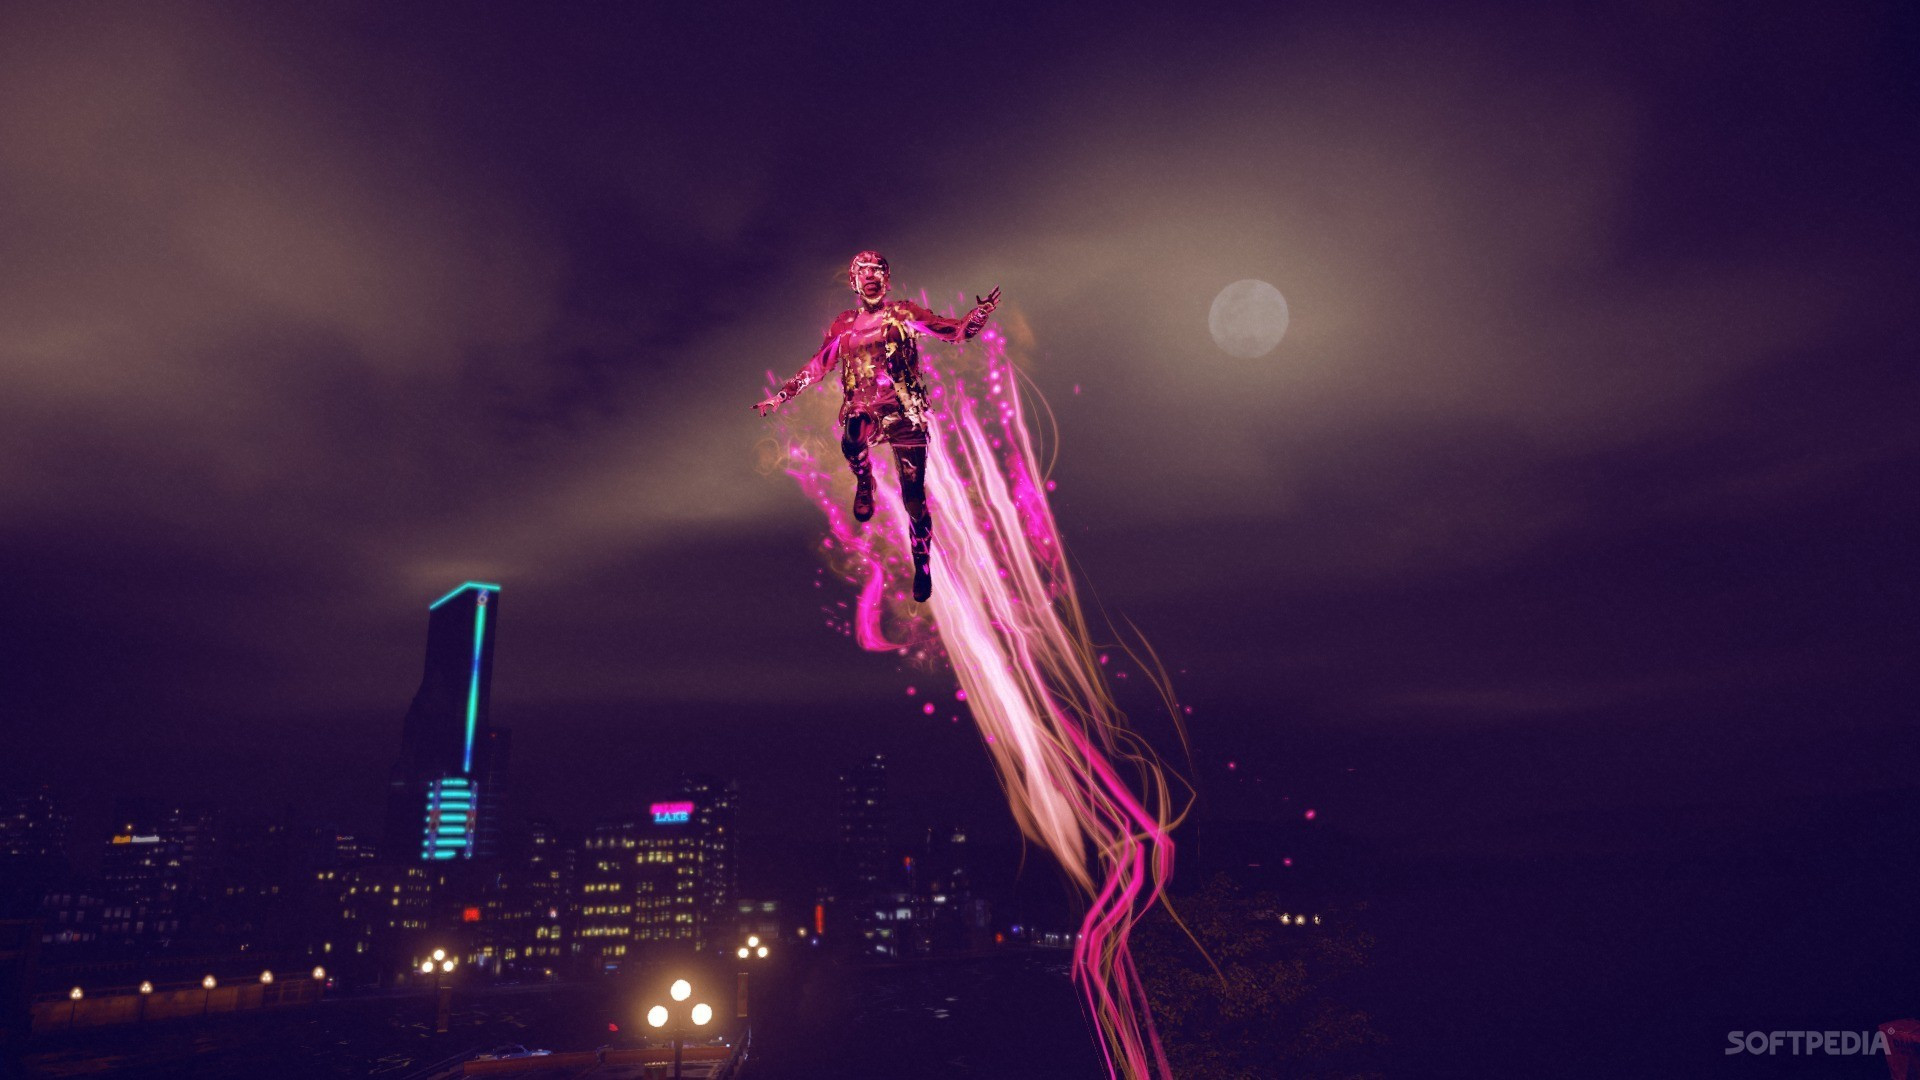 1920x1080 inFAMOUS: First Light HD Wallpaper HD 30 - 1920 X 1080